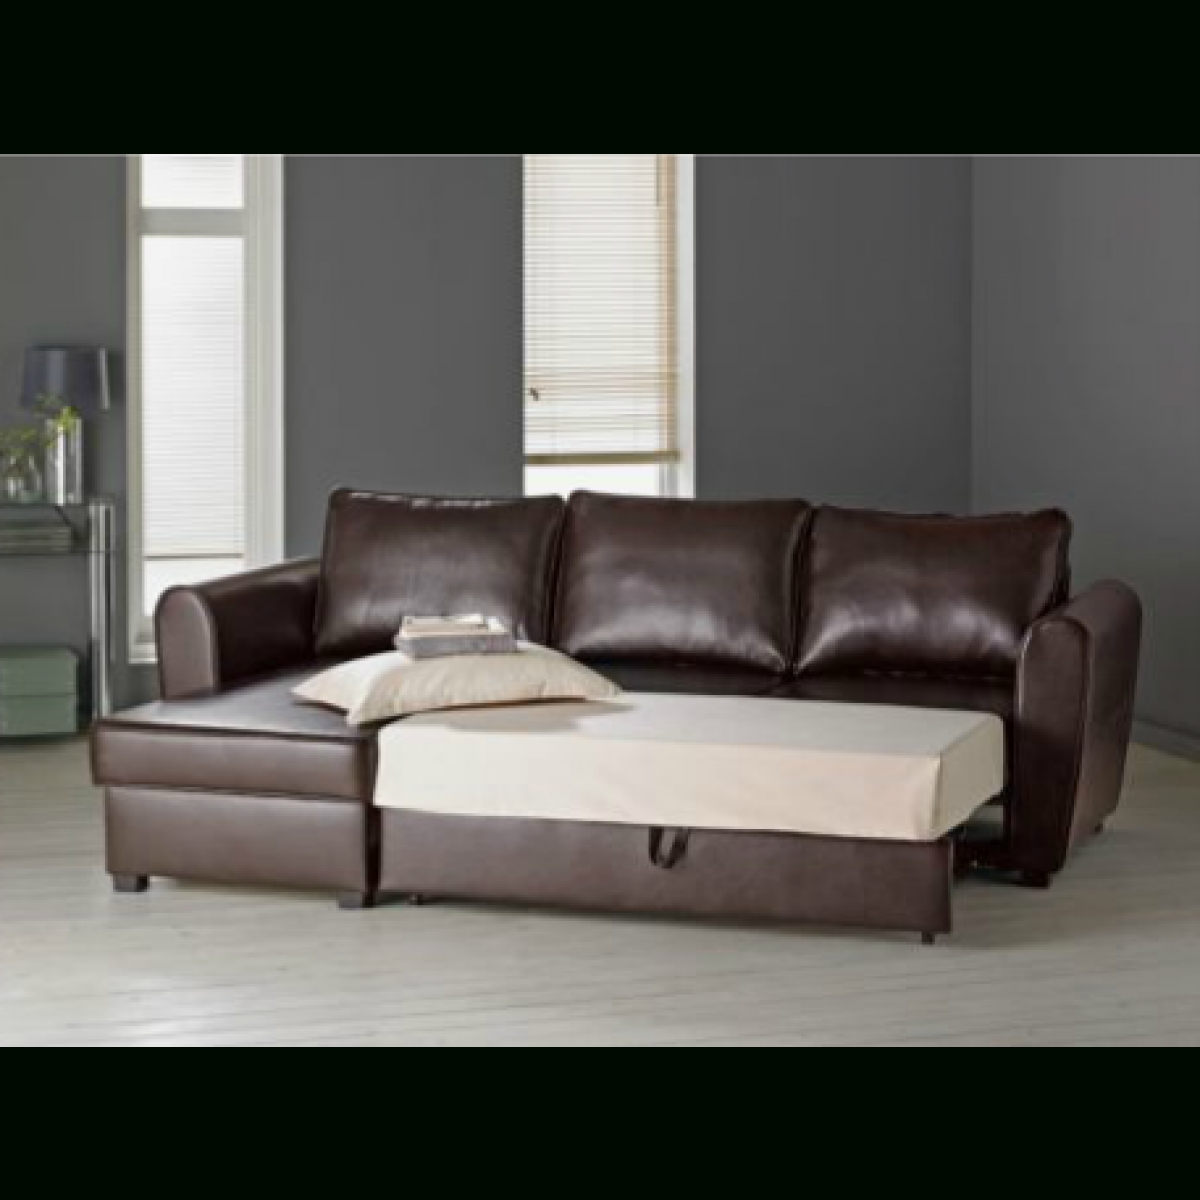 Siena Leather Effect Corner Sofa Bed With Storage  Chocolate Regarding Fashionable Storage Sofas (View 13 of 15)